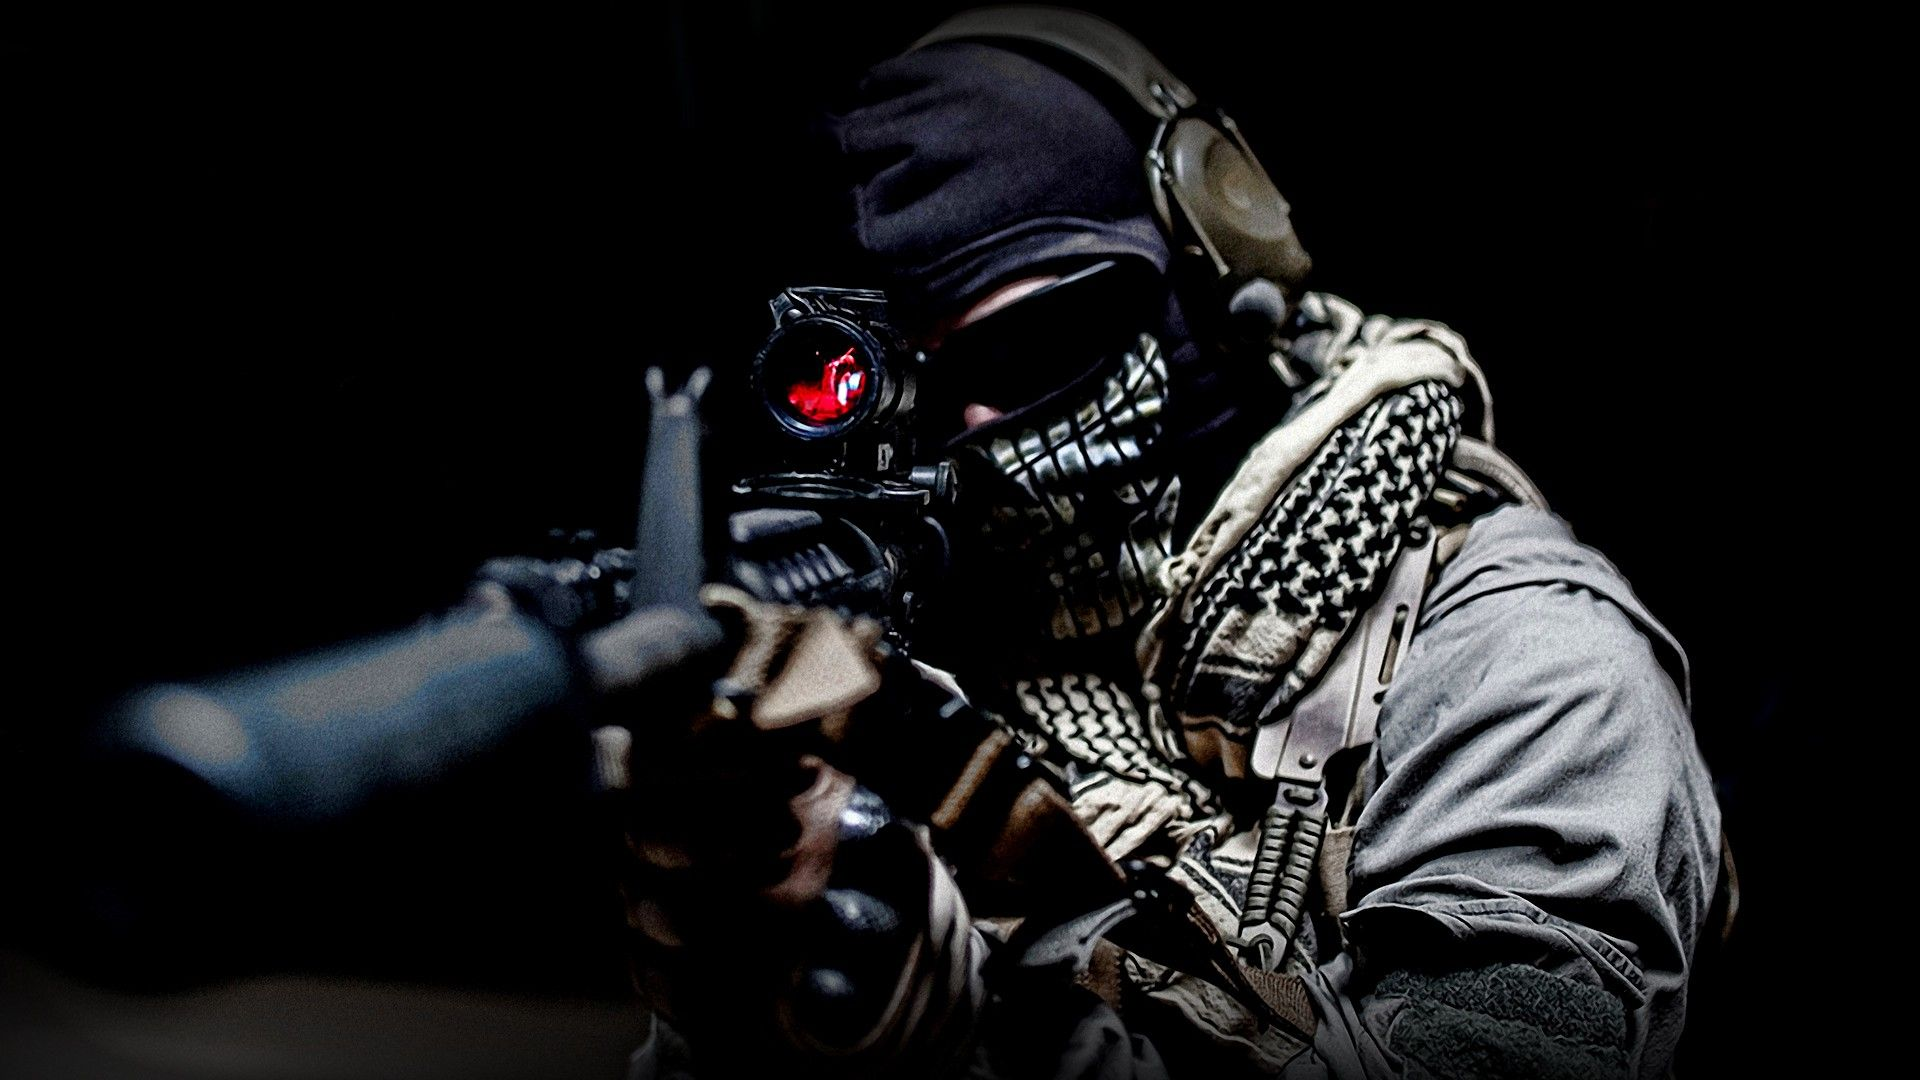 Call Of Duty Sniper One Call Of Duty Ghosts Military Wallpaper Call Of Duty